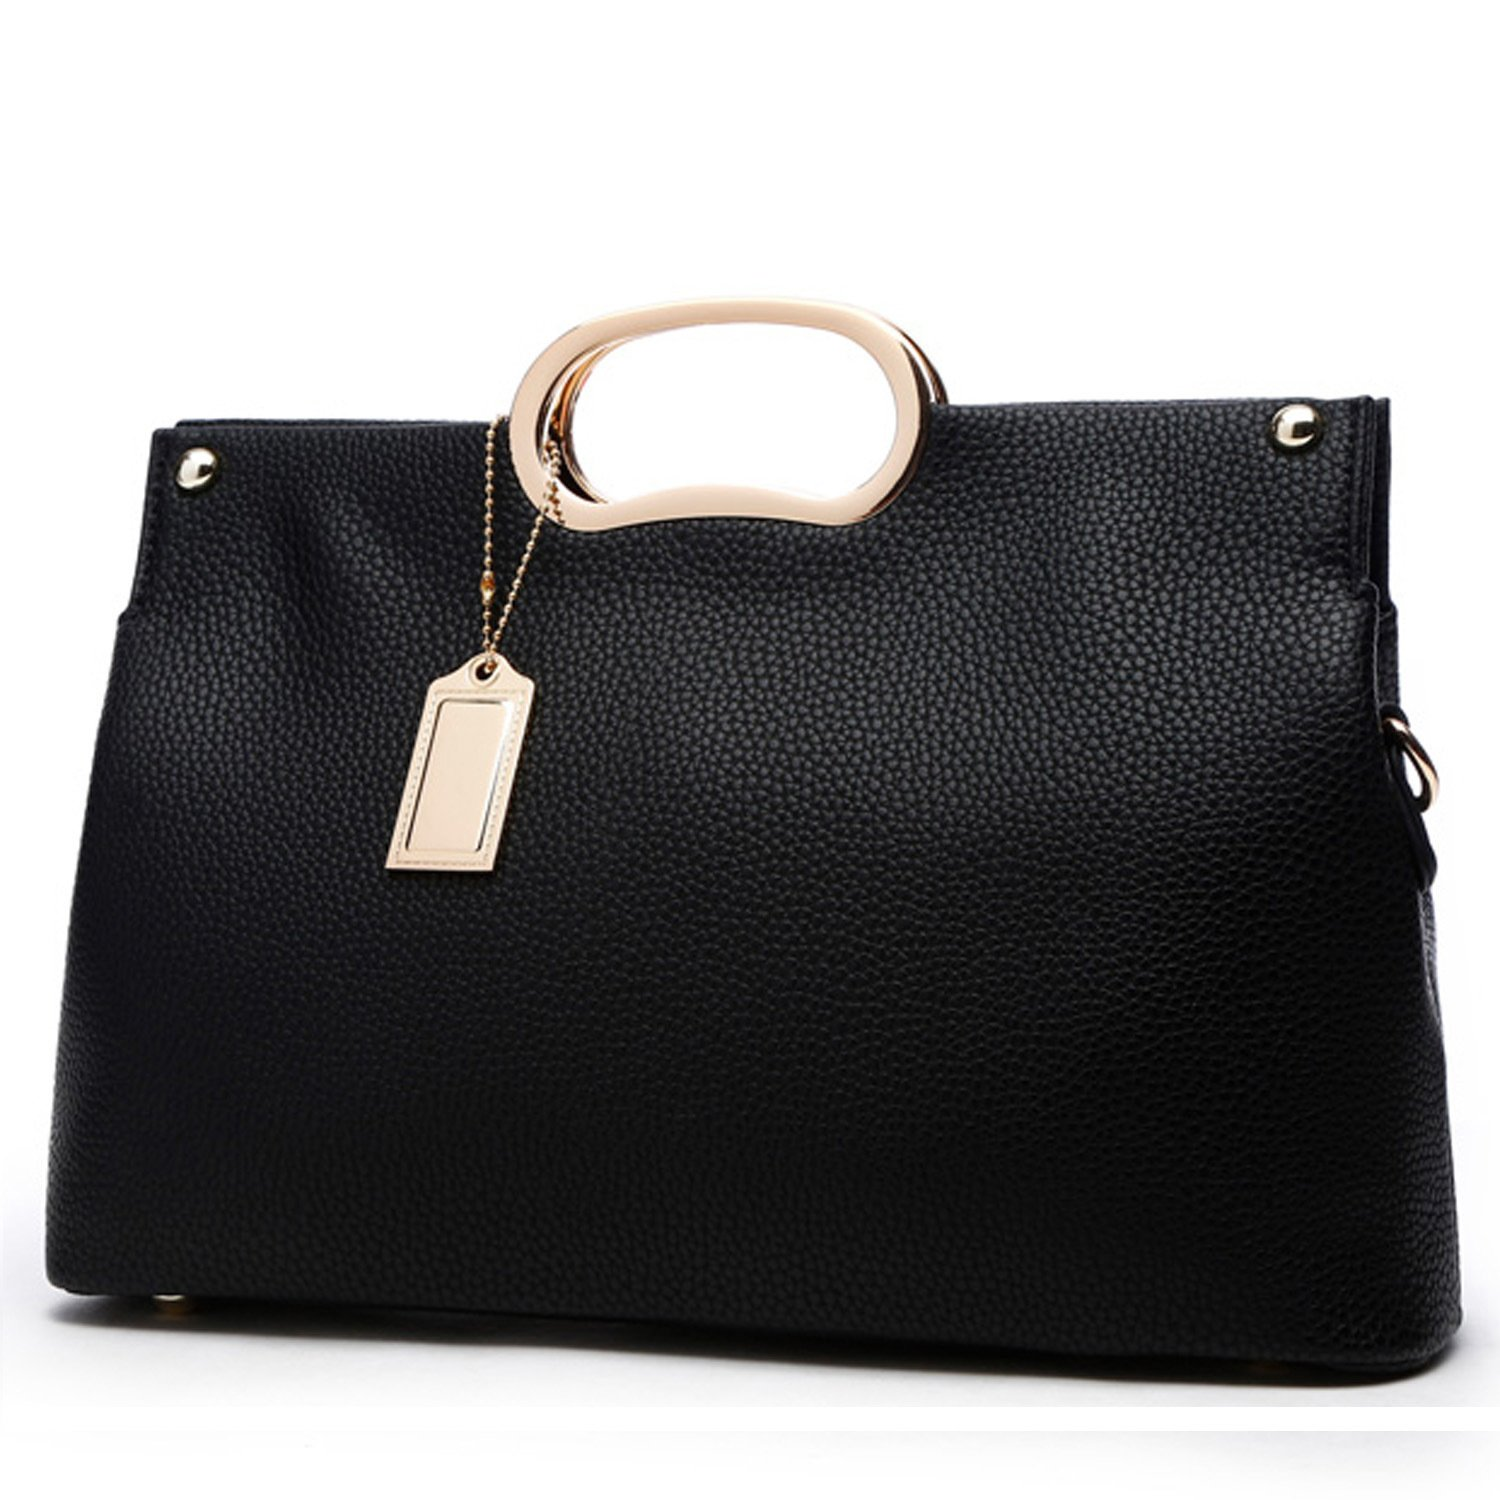 YNIQUE Clutch Purses and Handbags for Women Satchel Shoulder Tote Bags